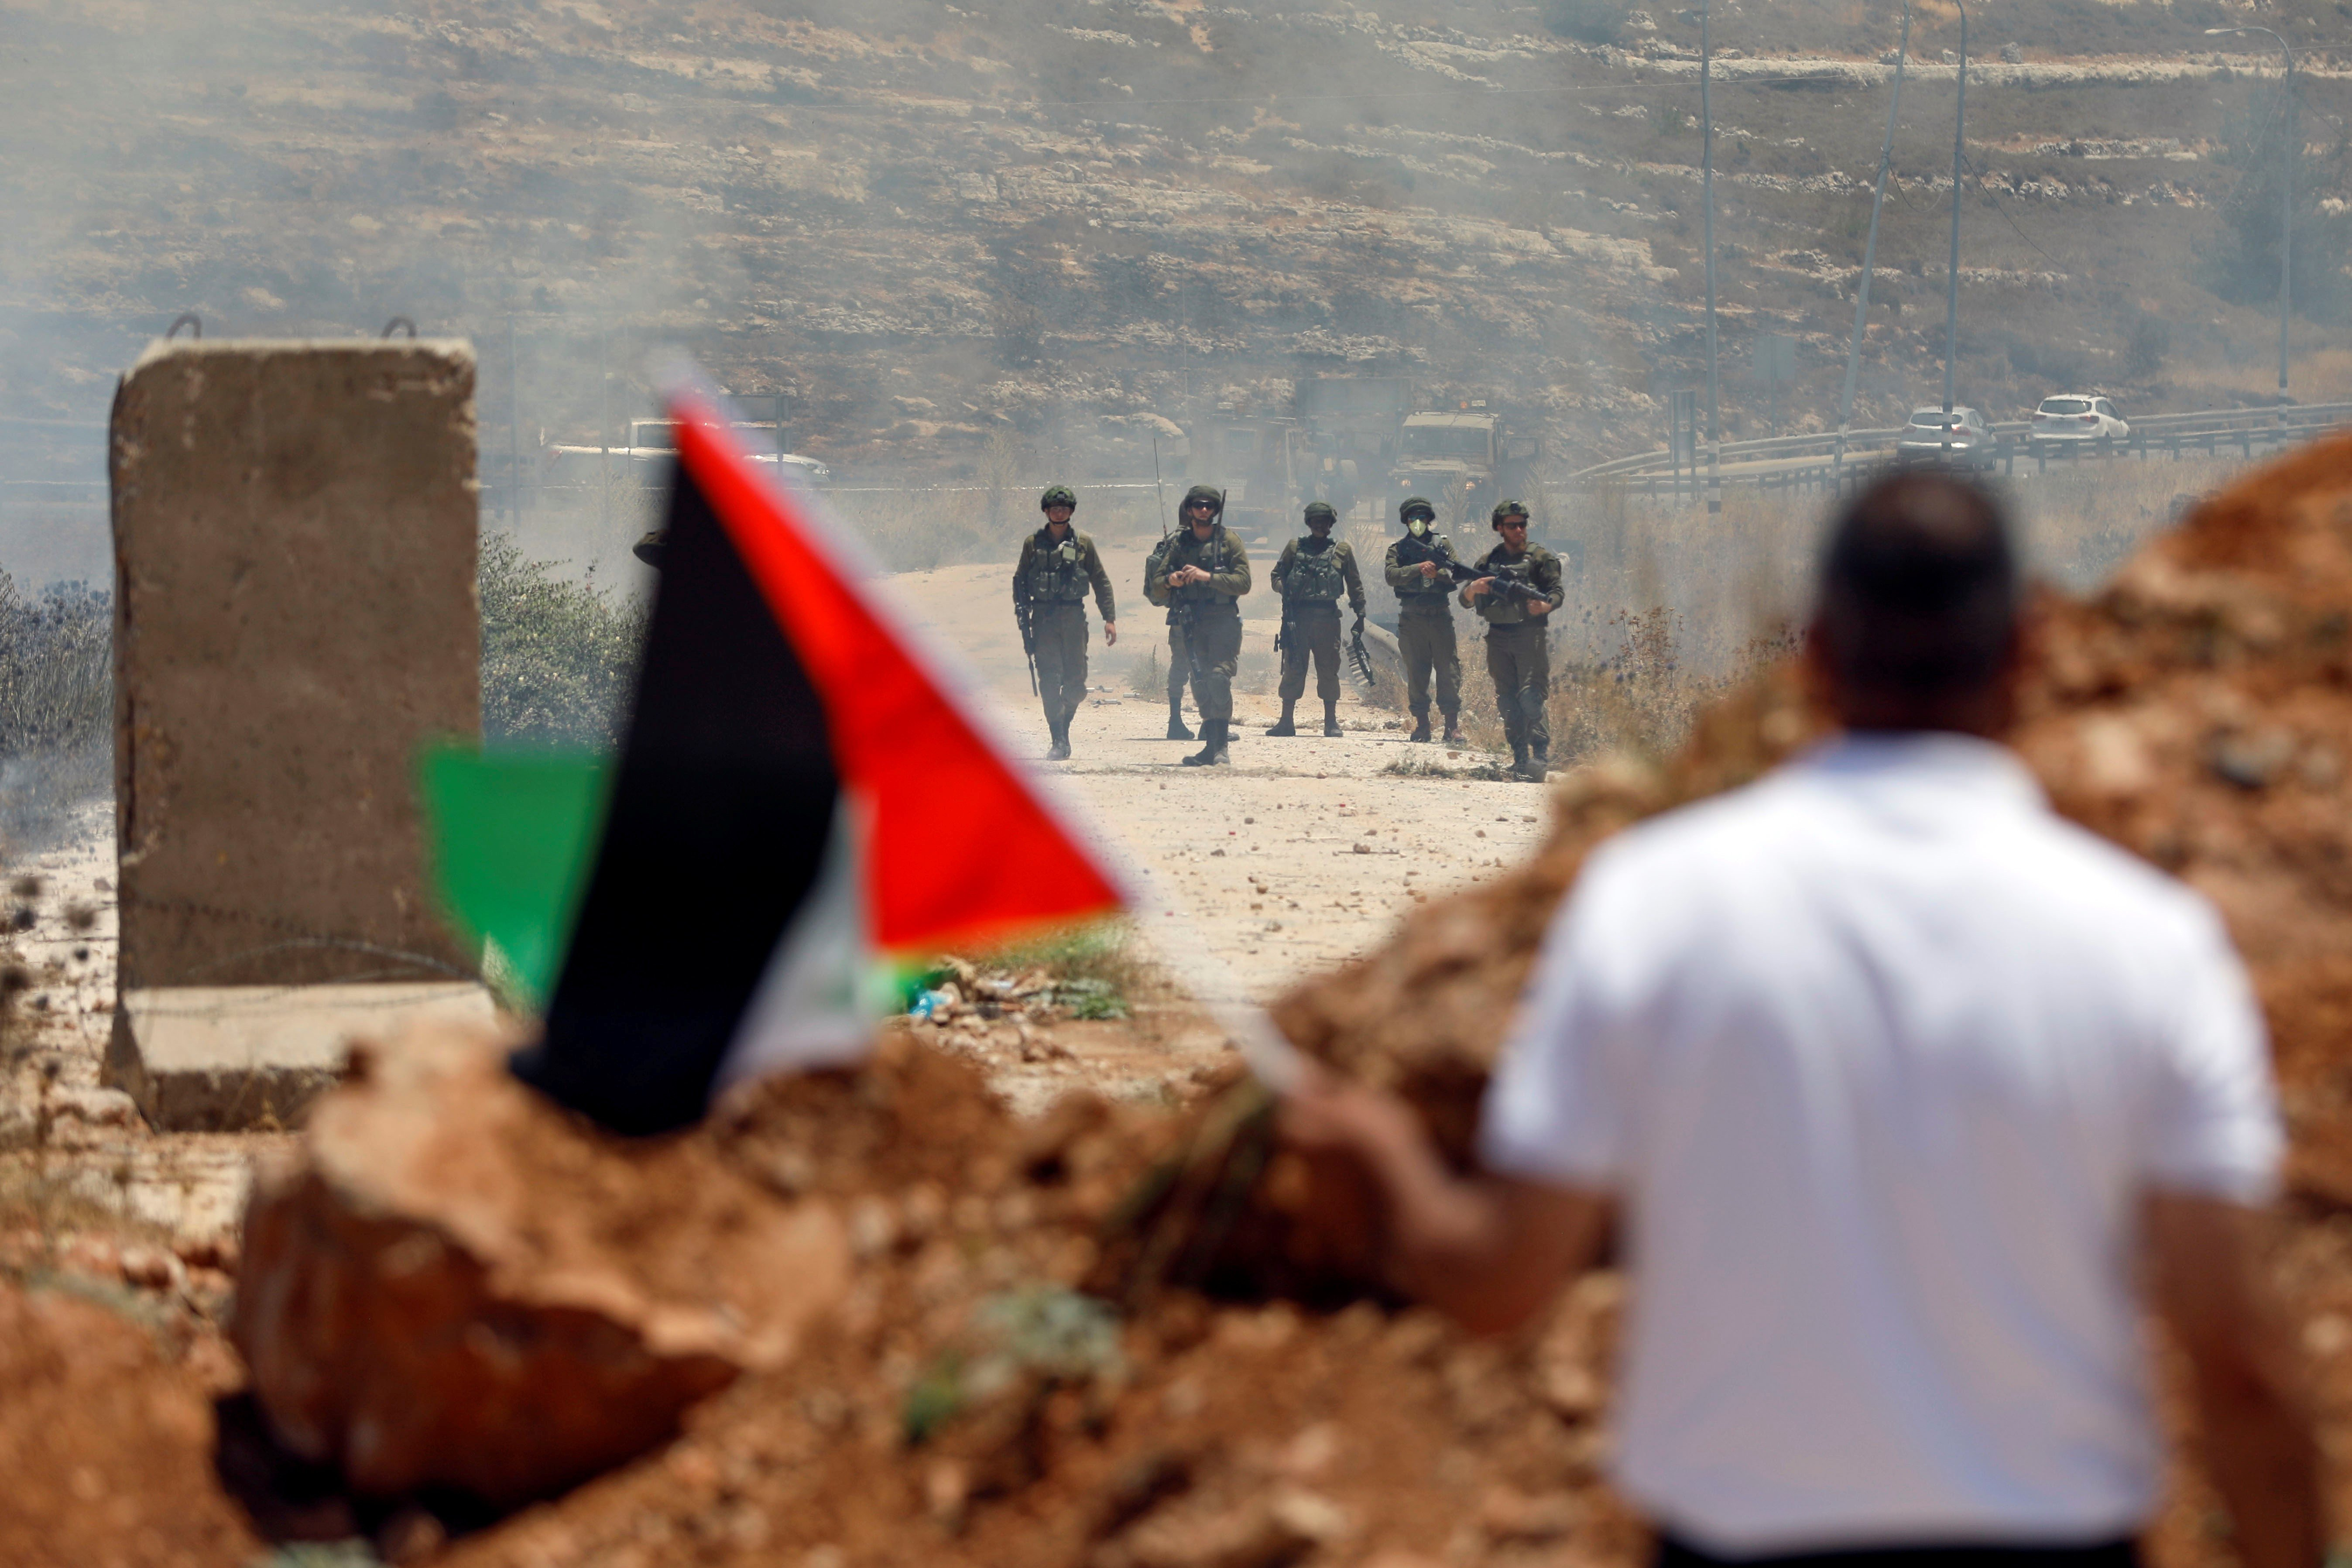 A demonstrator waves a Palestinian flag in front of Israeli forces in the Israeli-occupied West Bank on 25 June (Reuters)